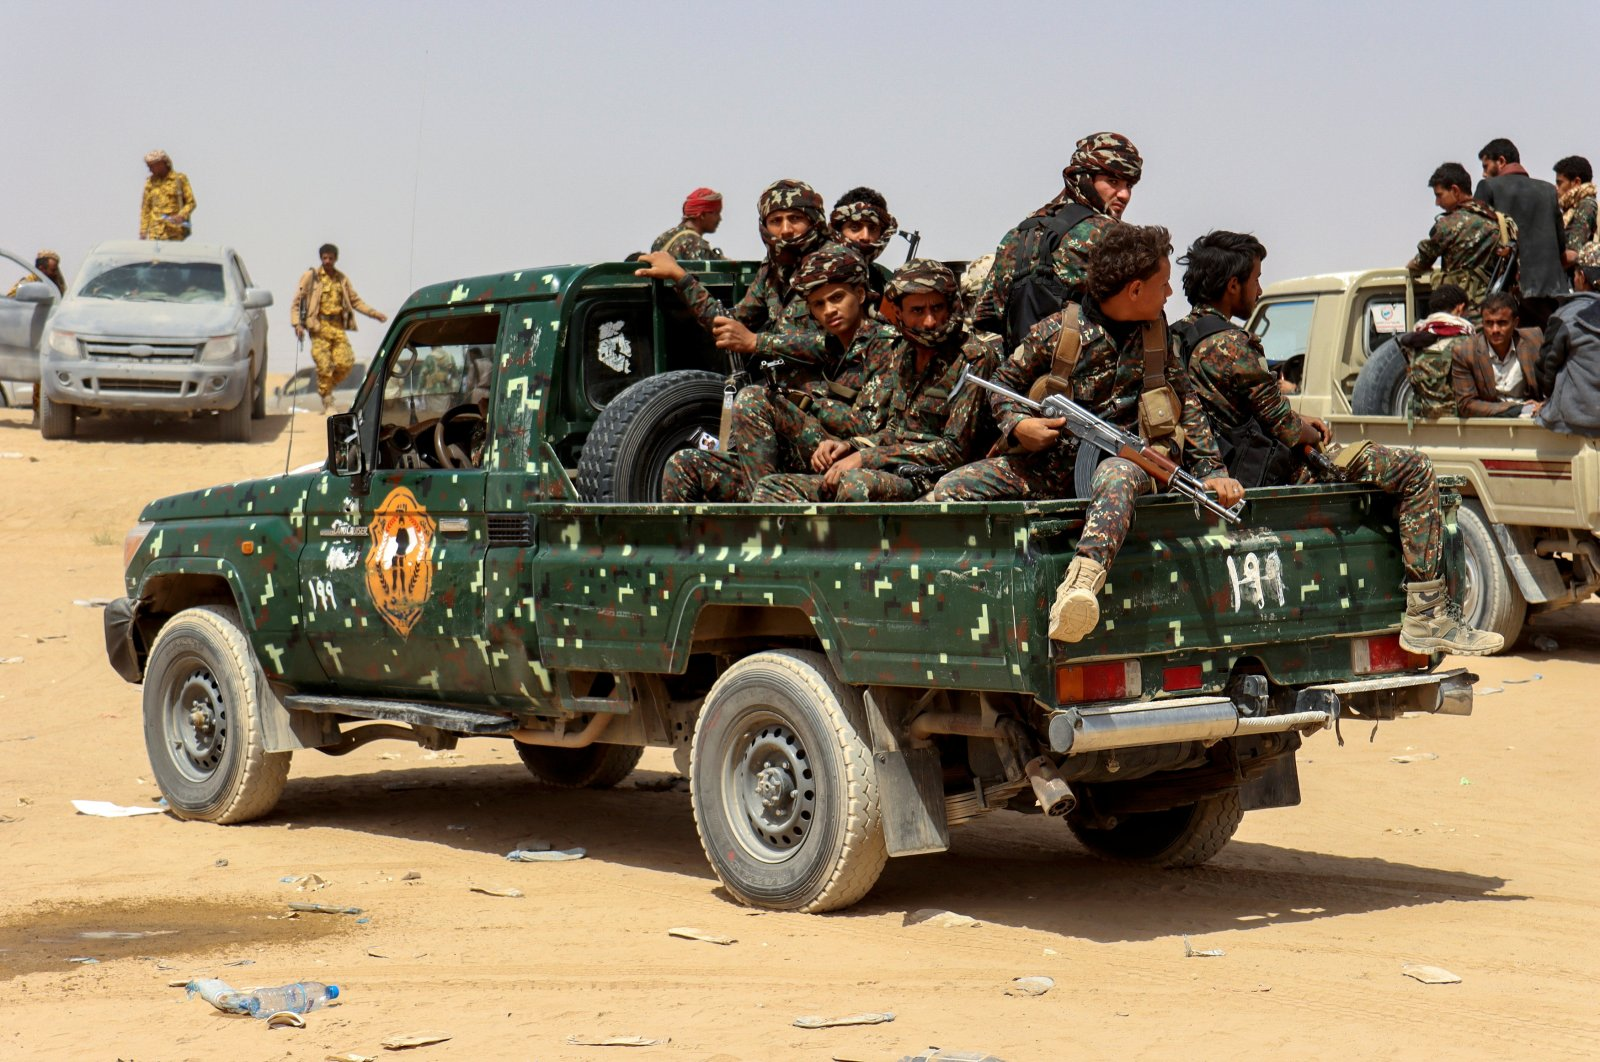 Yemen: At least 90 combatants between government forces and Houthi rebels have been killed in fighting in Marib in last 24 hours